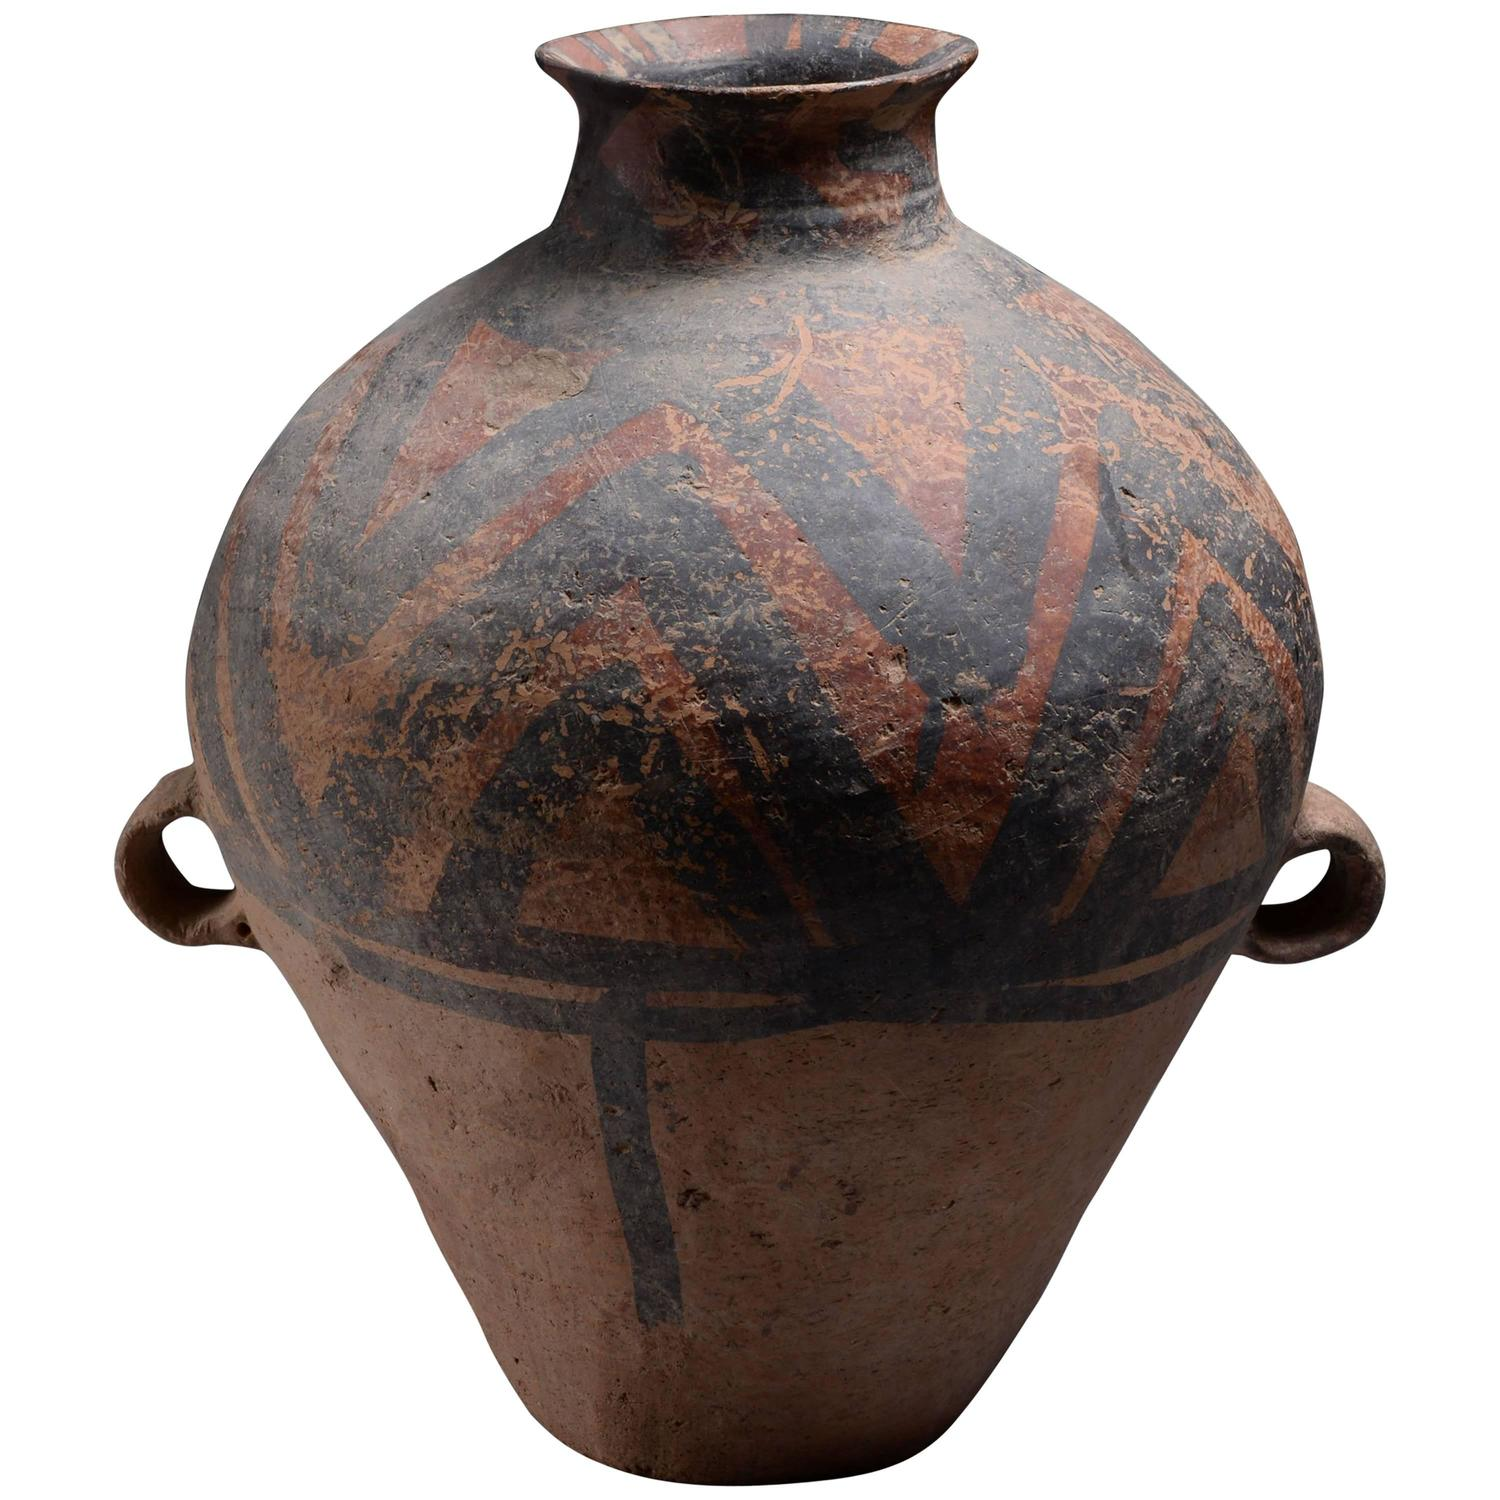 Ancient chinese neolithic yangshao culture pottery amphora 3000 ancient chinese neolithic yangshao culture pottery amphora 3000 bc at 1stdibs reviewsmspy